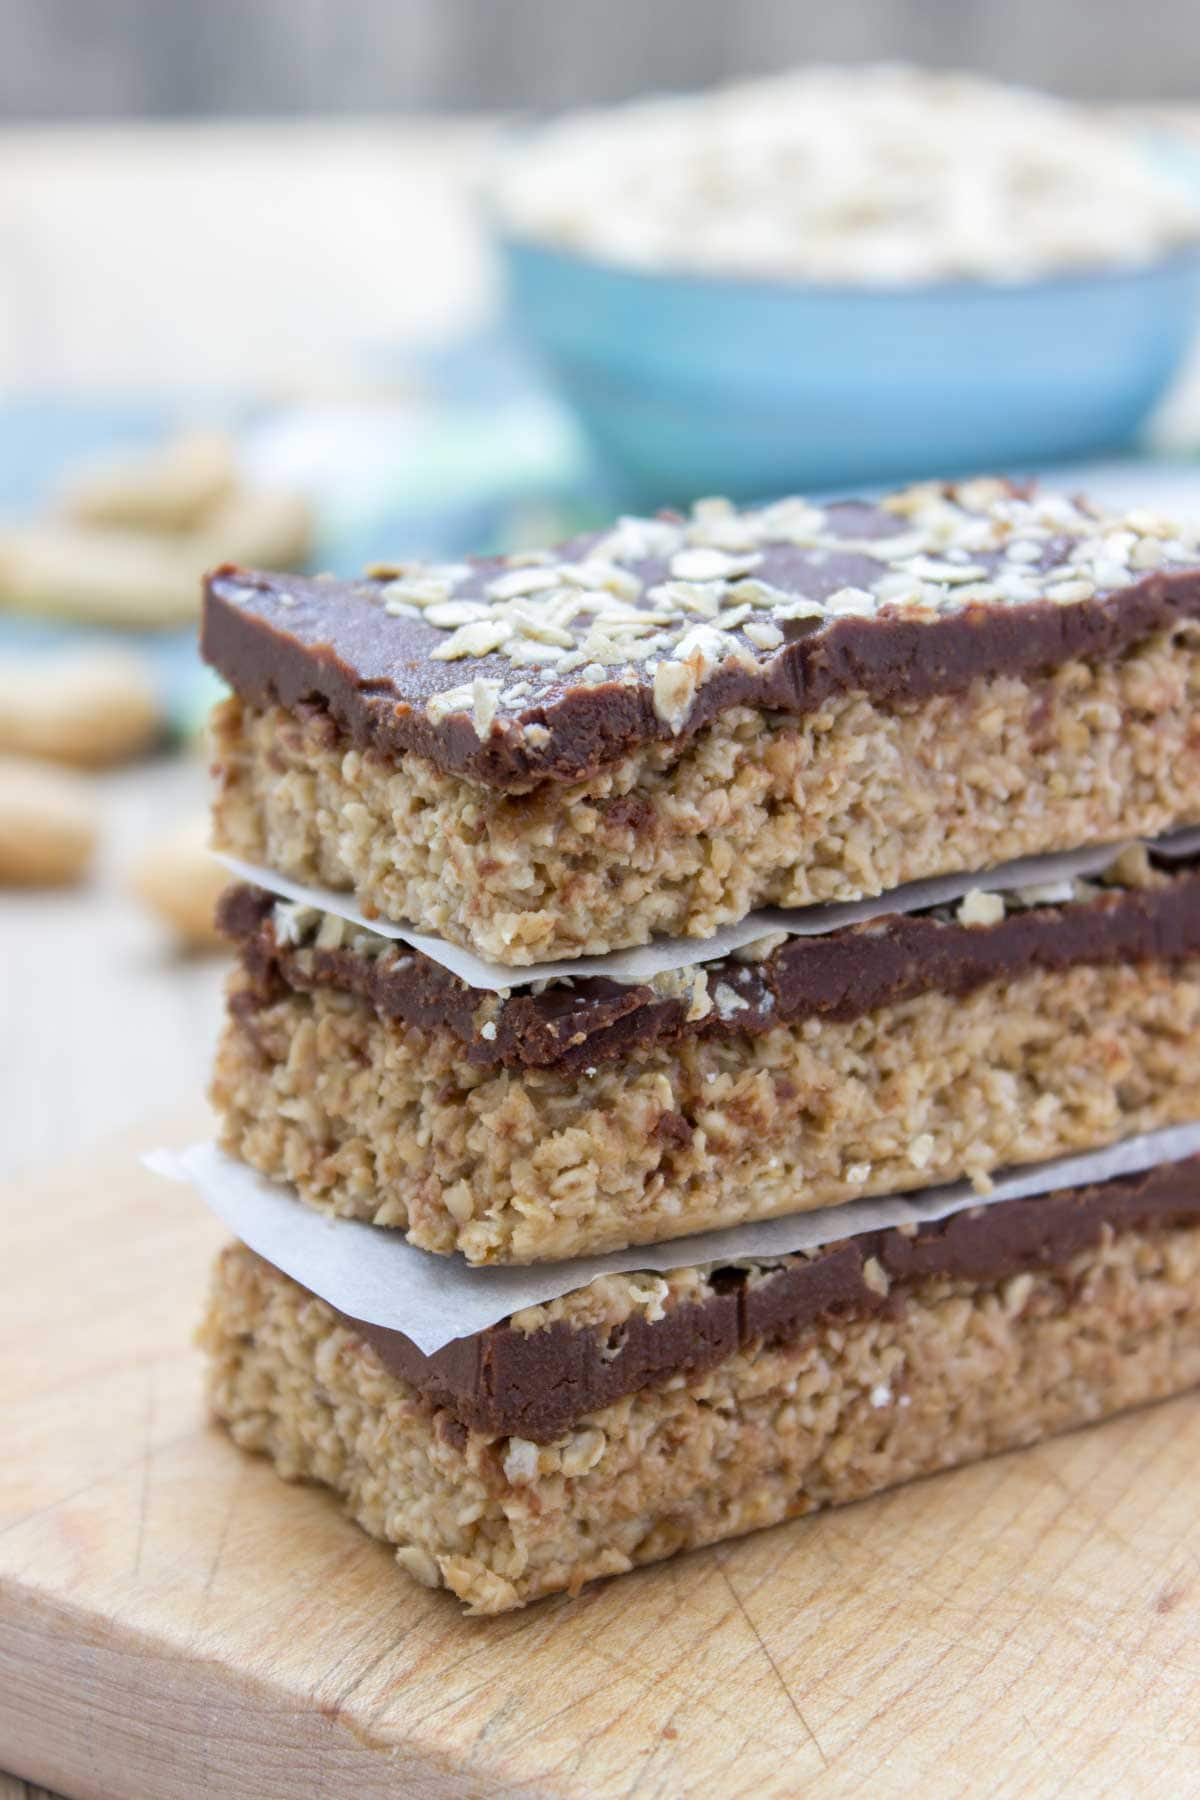 Protein-rich and delicious, No Bake Chocolate Peanut Butter Banana Oatmeal Bars made with all HEALTHY natural ingredients. These bars are vegan, refined sugar-free and gluten-free and packed with healthy dietary fibers. A perfect midday bite, or post workout snack. #vegan #glutenfree #sugarfree #dairyfree #healthy #oatmeal #oats #family #kidsfriendly #whole30 #weightloss #skinny #fit #workout #nobake #raw   natalieshealth.com